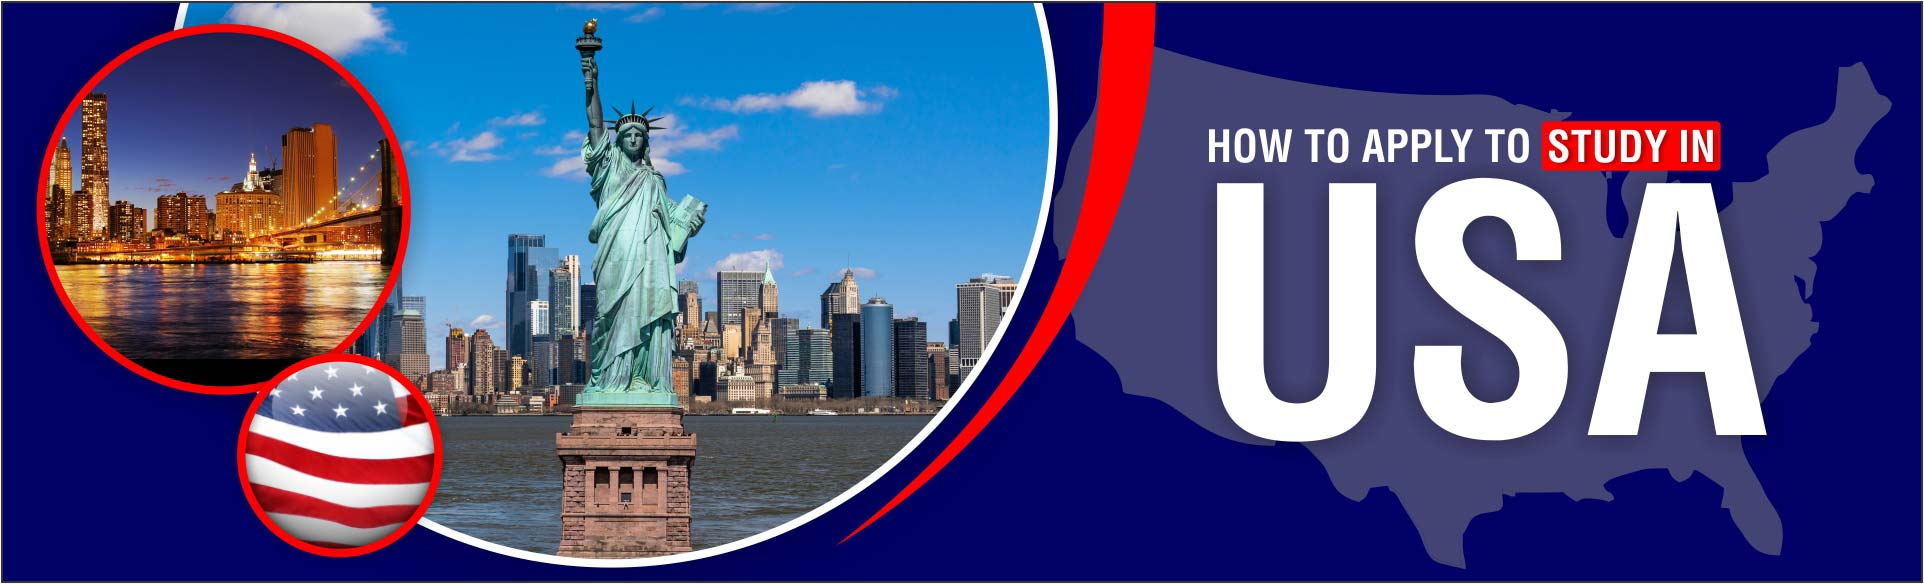 How to Apply to Study in the USA